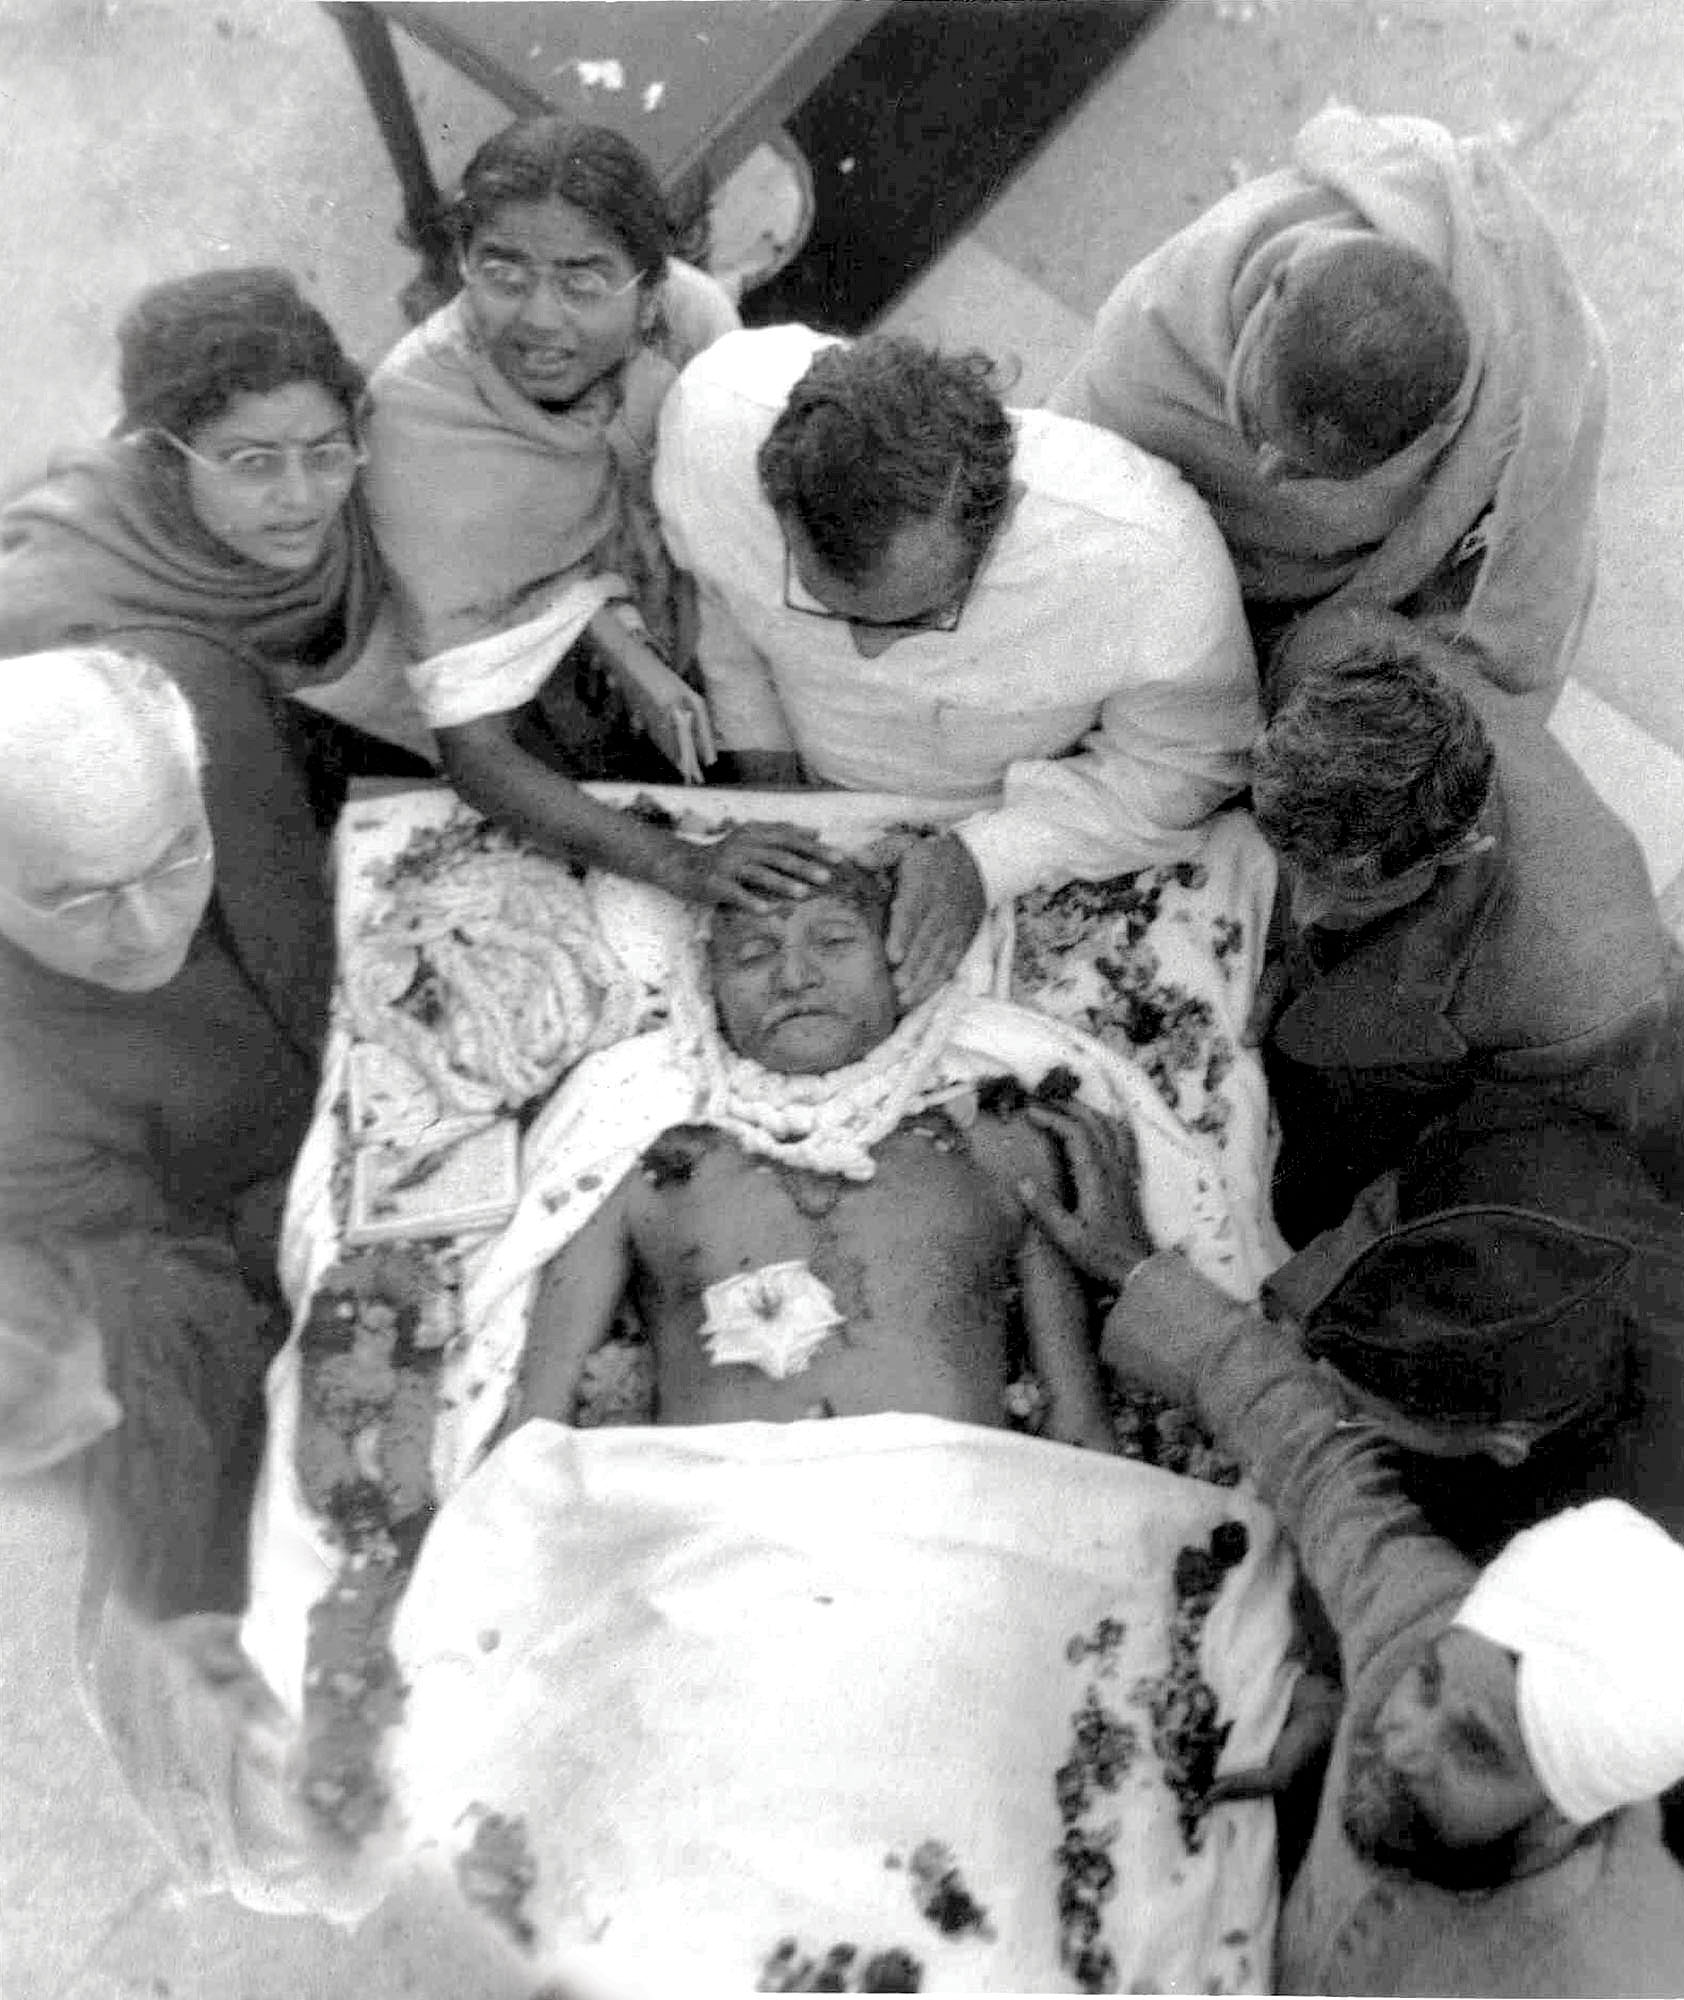 Gandhi after he was shot dead by Nathuram Godse in Delhi on January 31, 1948. Godse was unhappy with Gandhi's efforts to end the communal rioting and blamed the Mahatma for Muslim appeasement. Credit: Getty Images